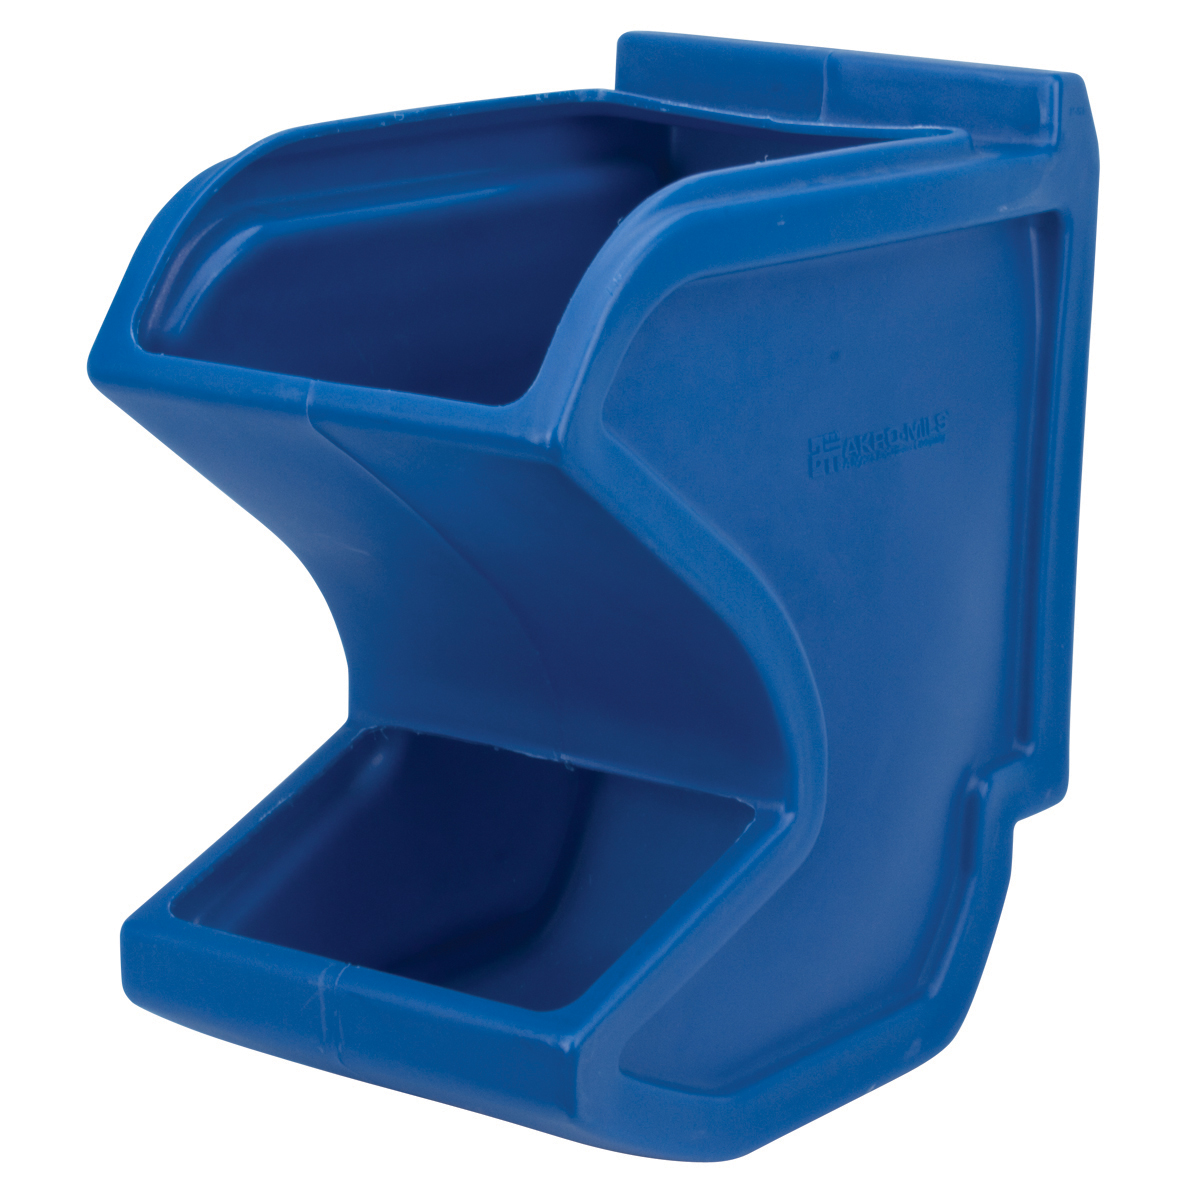 Easy Flow Gravity Hopper 18 x 10-3/4 x 19-1/2, Blue (31625BLUE).  This item sold in carton quantities of 1.